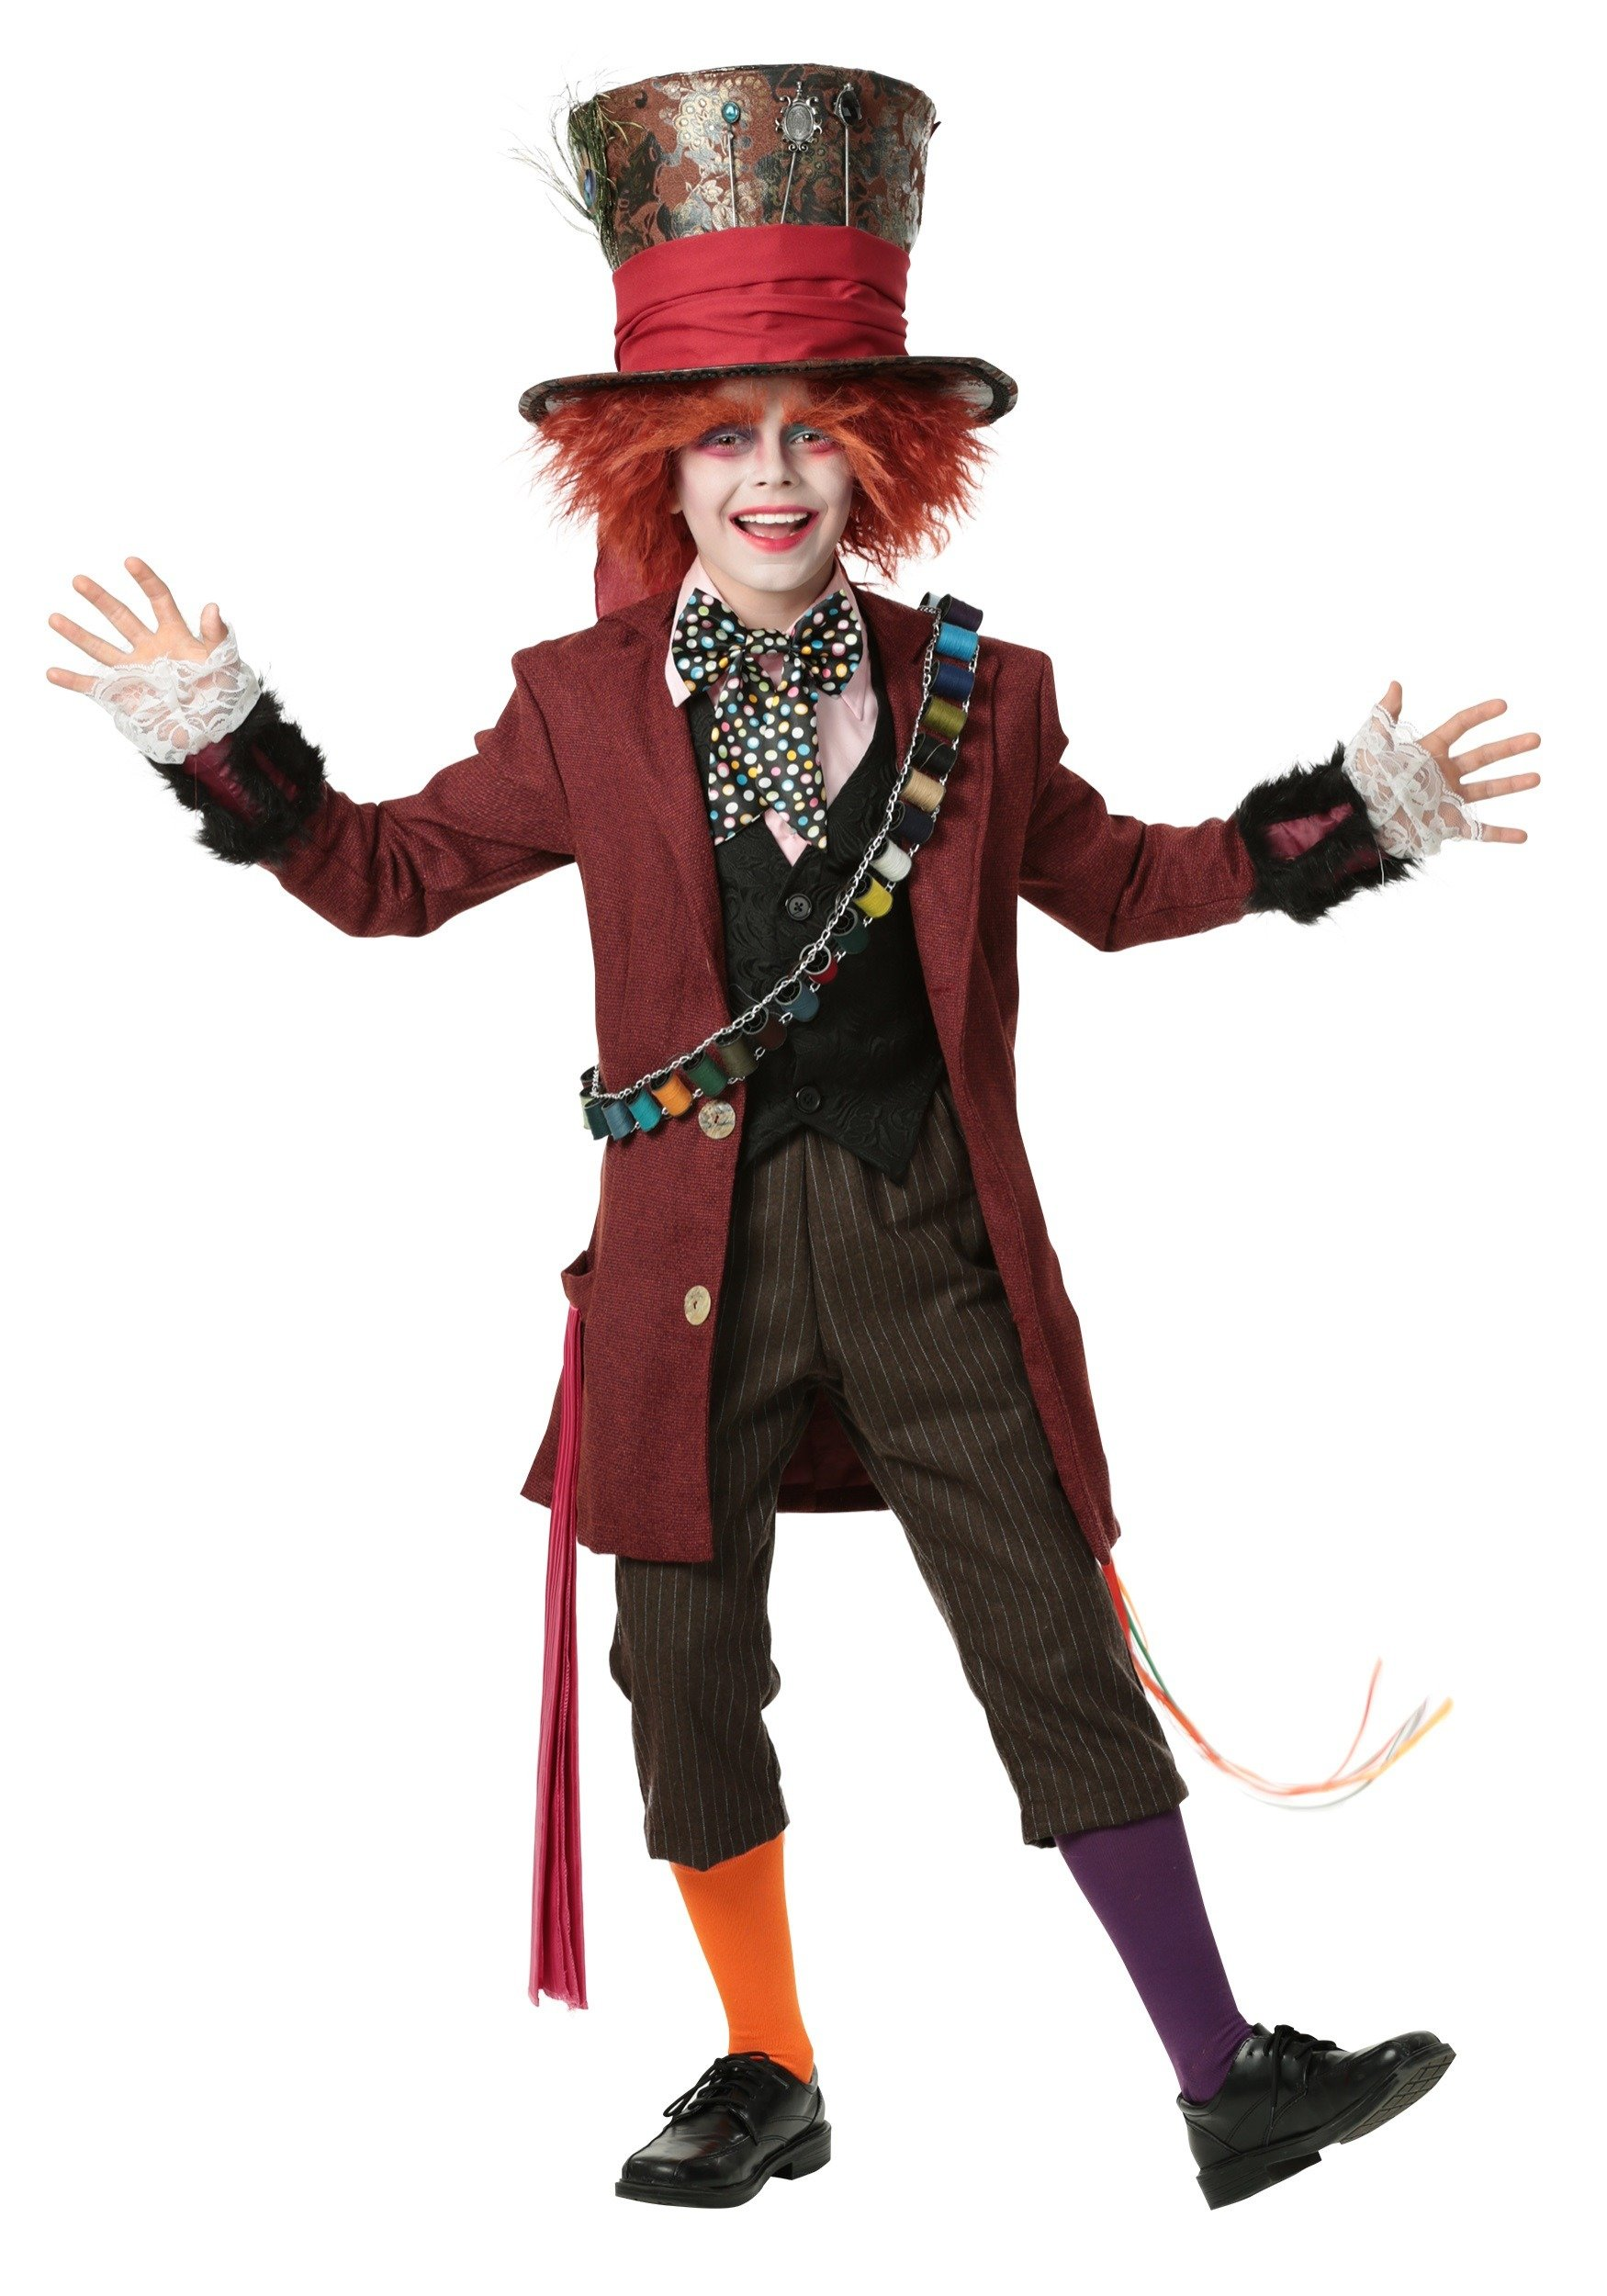 Fun Costumes Authentic Mad Hatter Costume Large (12-14) by FunCostumes